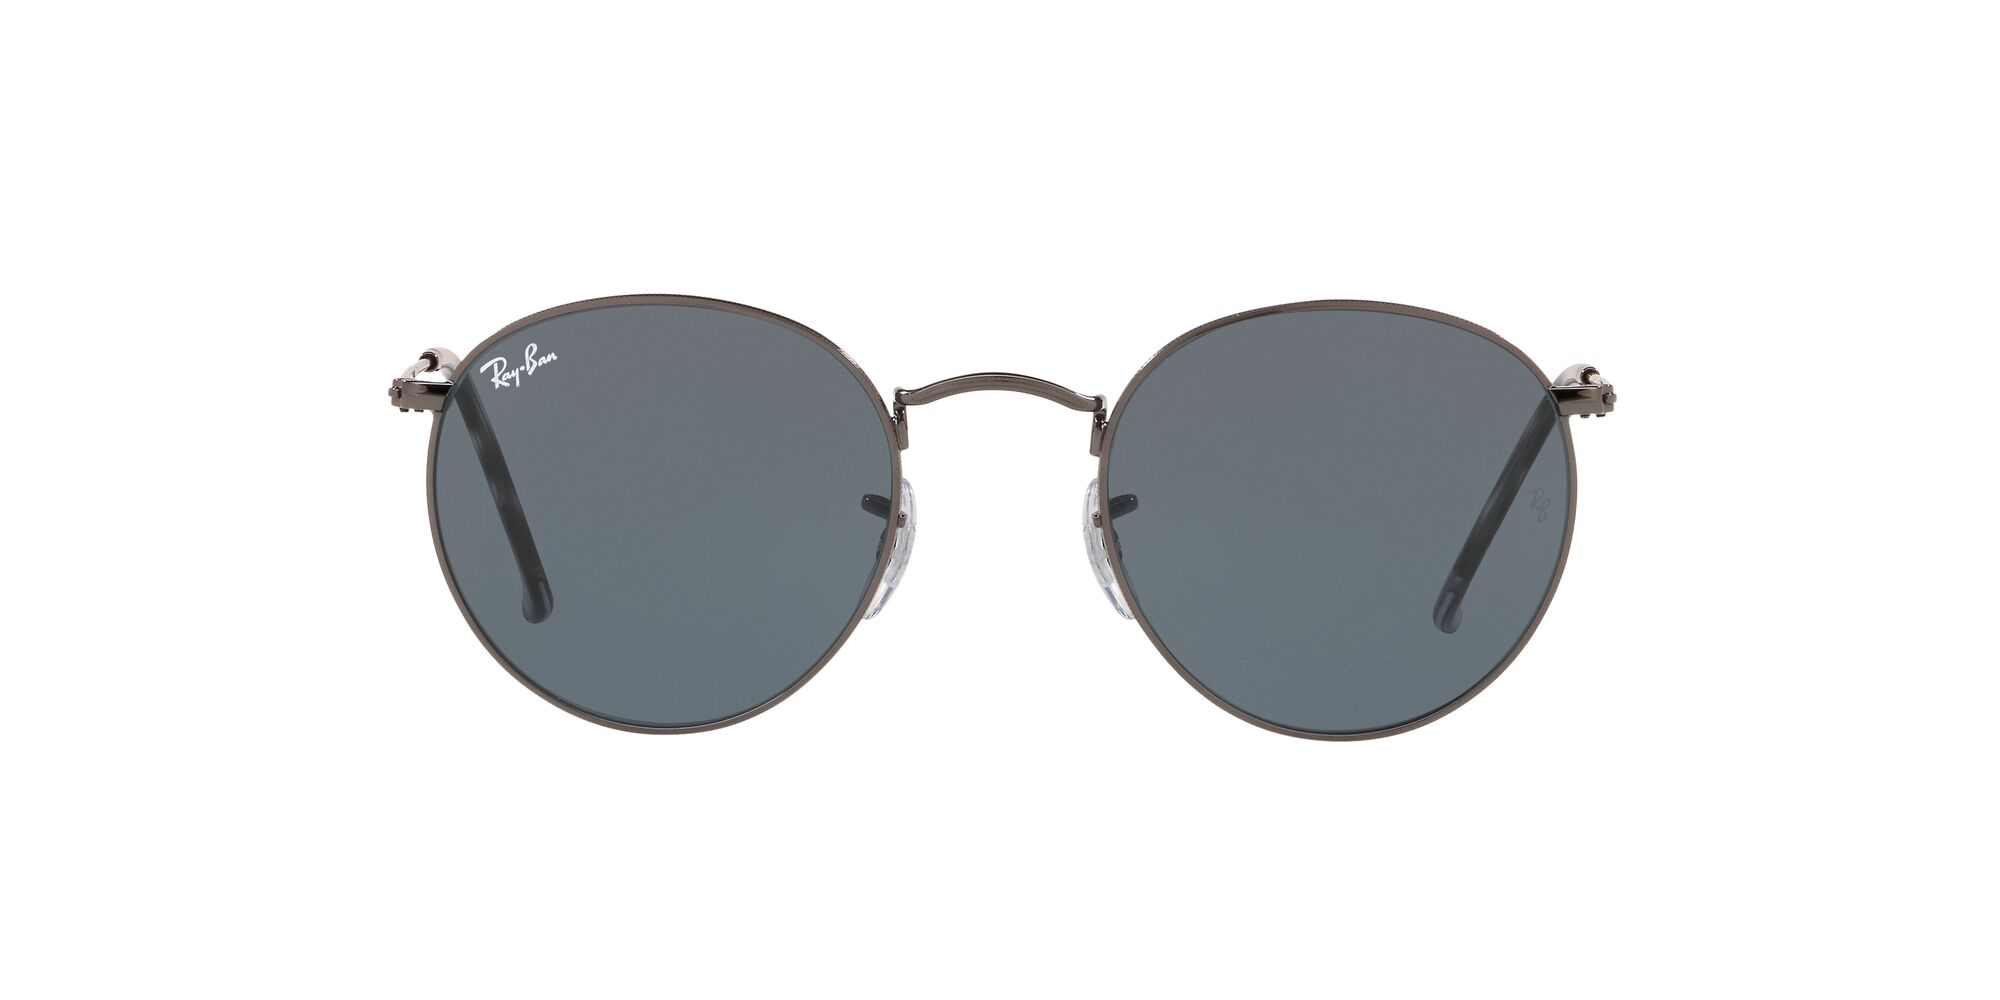 Front Ray-Ban Ray-Ban 0RB3447 9171R5 50/21 Grijs/Blauw